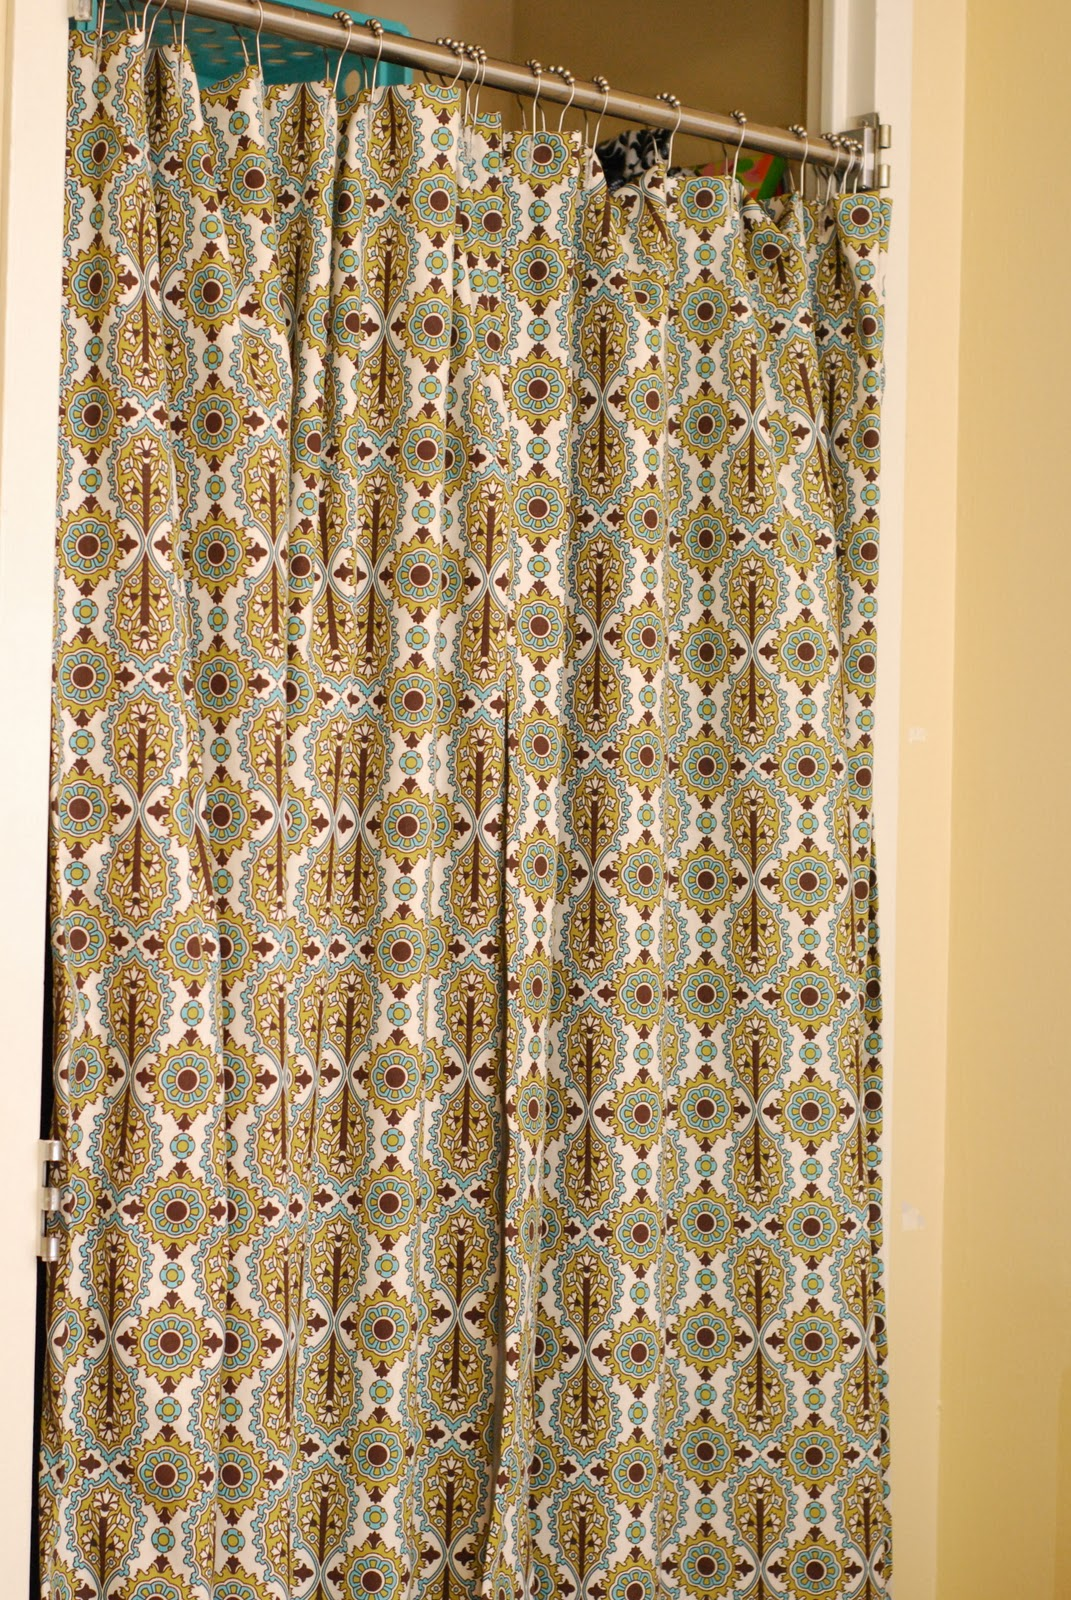 Closet Curtain For Dorms Without Doors